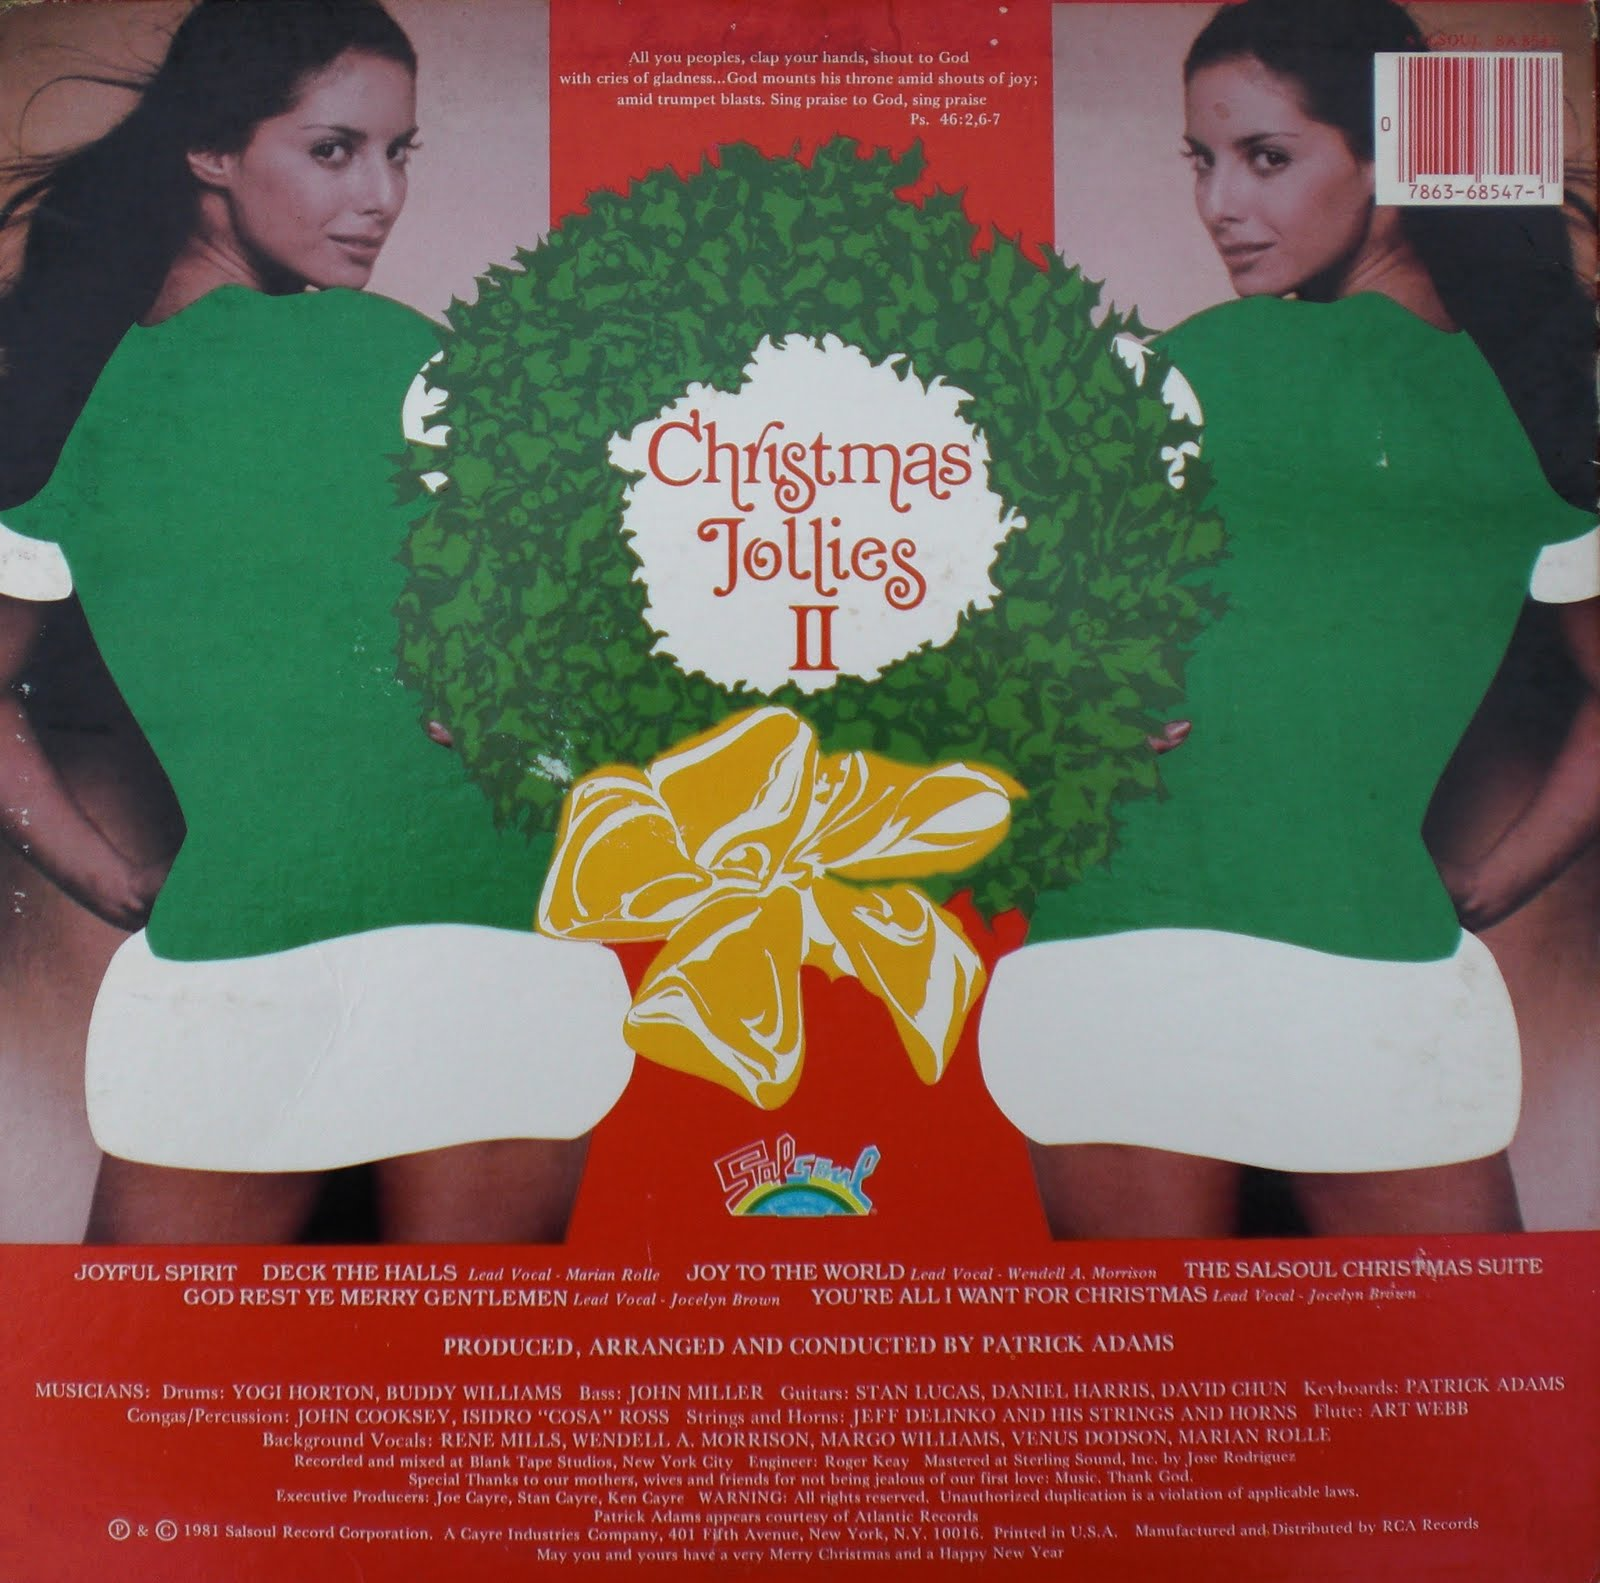 recordo obscura: the soundtrack of nobody's life: CHRISTMAS JOLLIES II